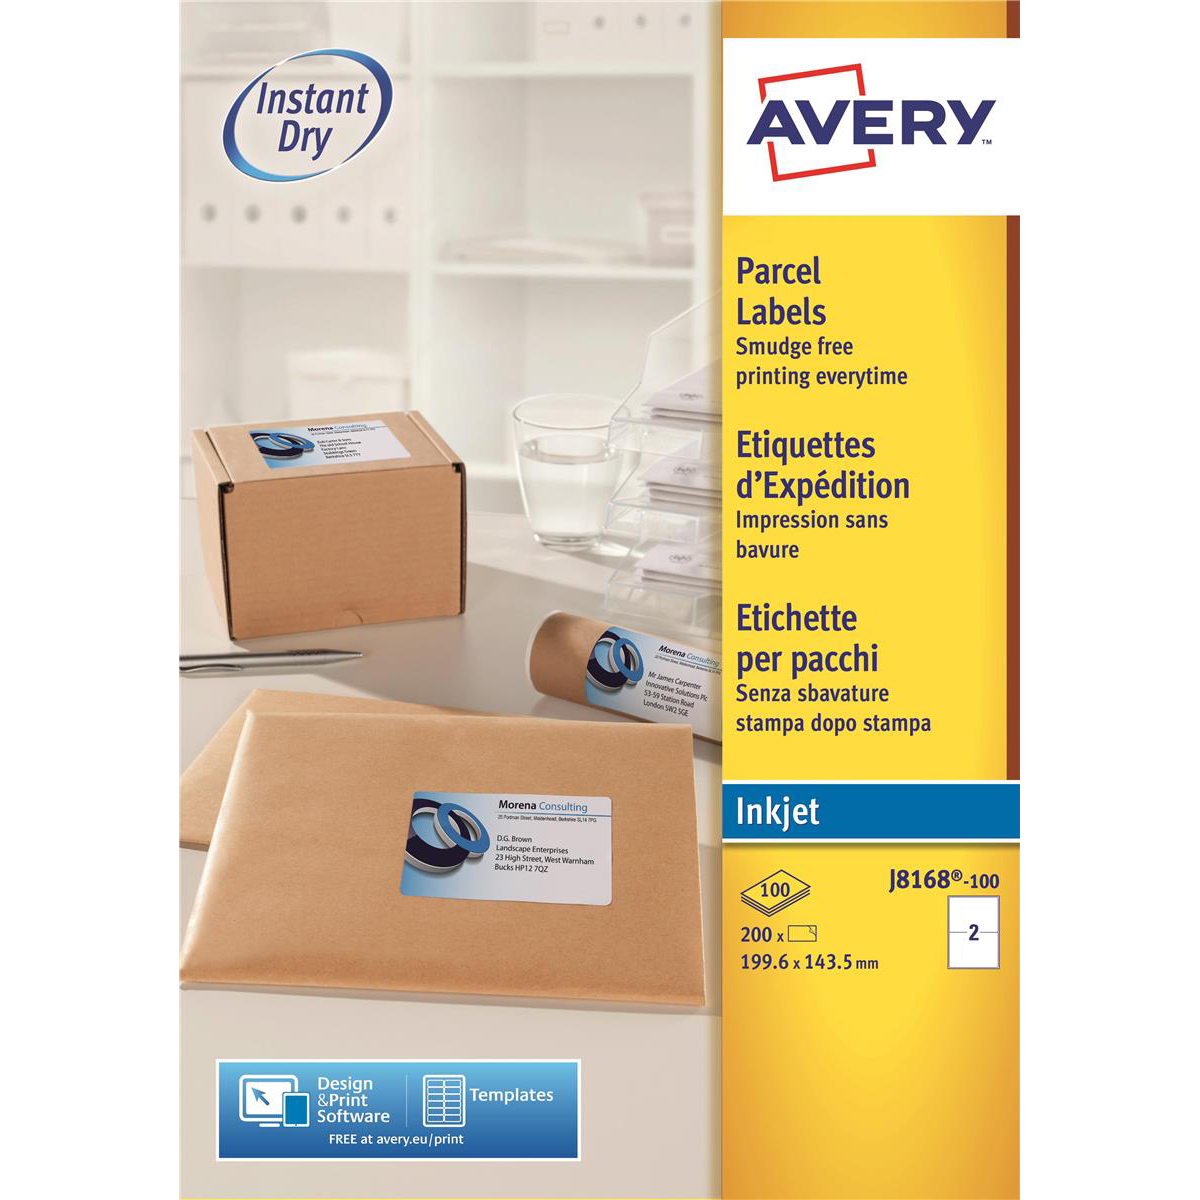 Address Avery QuickDRY Parcel Labels Inkjet 2 per Sheet 199.6x143.5mm White Ref J8168-100 200 Labels